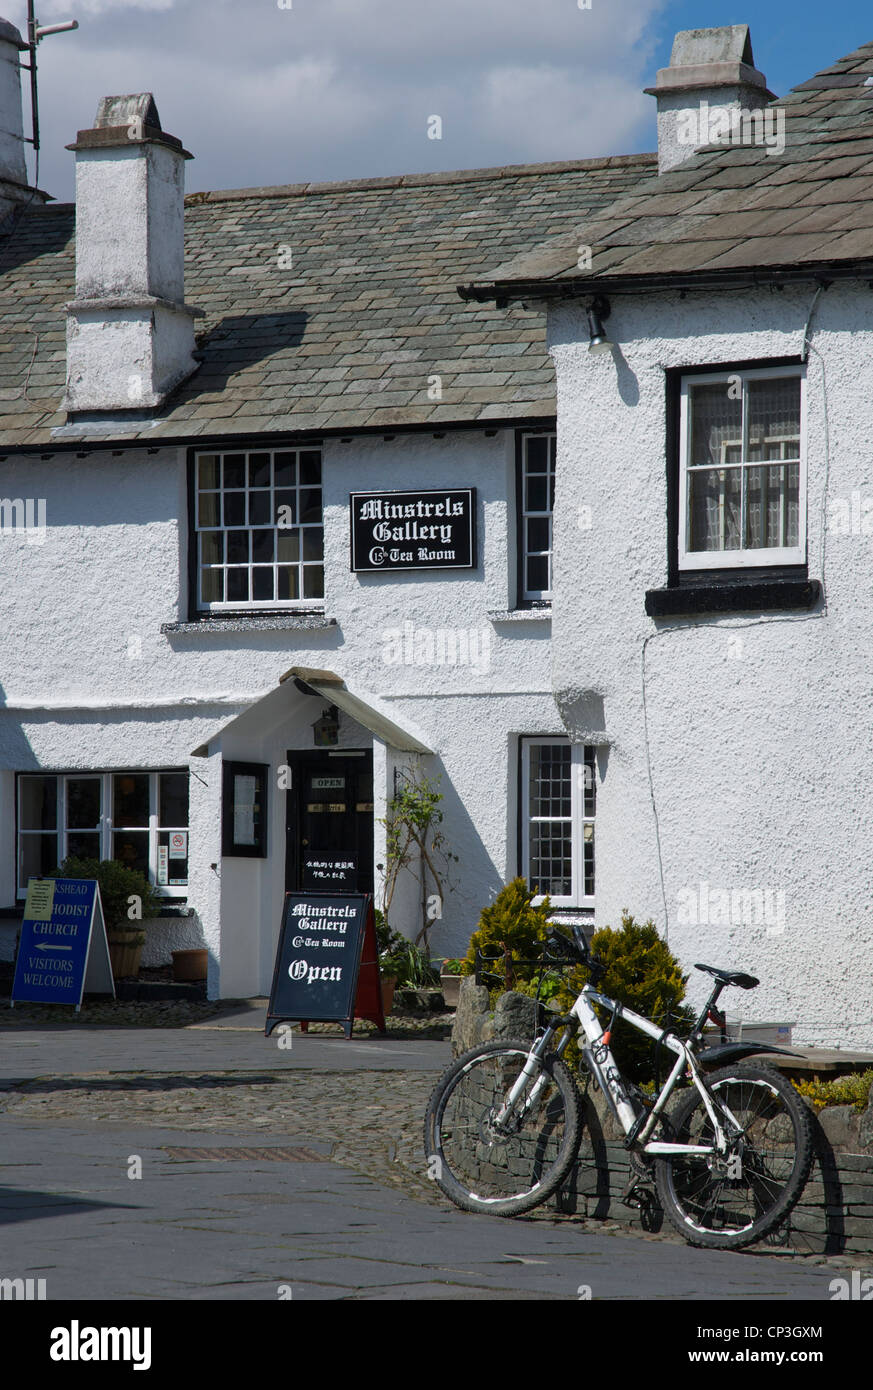 The Minstrel's Galley tea room in the village of Hawkshead, Lake District National Park, Cumbria, England UK - Stock Image